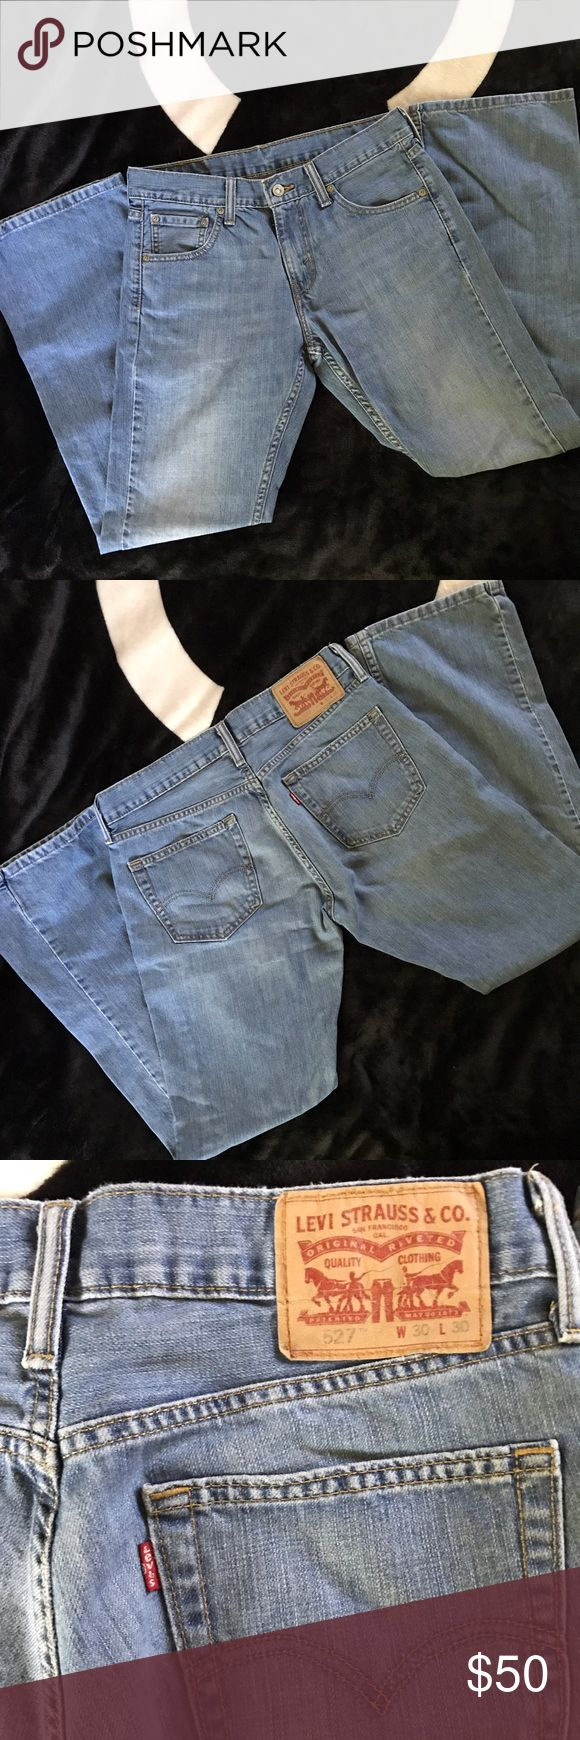 Levi Jeans 30 My fiancé bought these online and they didn't fit right so he gave them to me to sell here. Like new condition, worn only to try on. Levi Strauss jeans, 30W 30L. Tags: Levi's blue men's Levi's Jeans